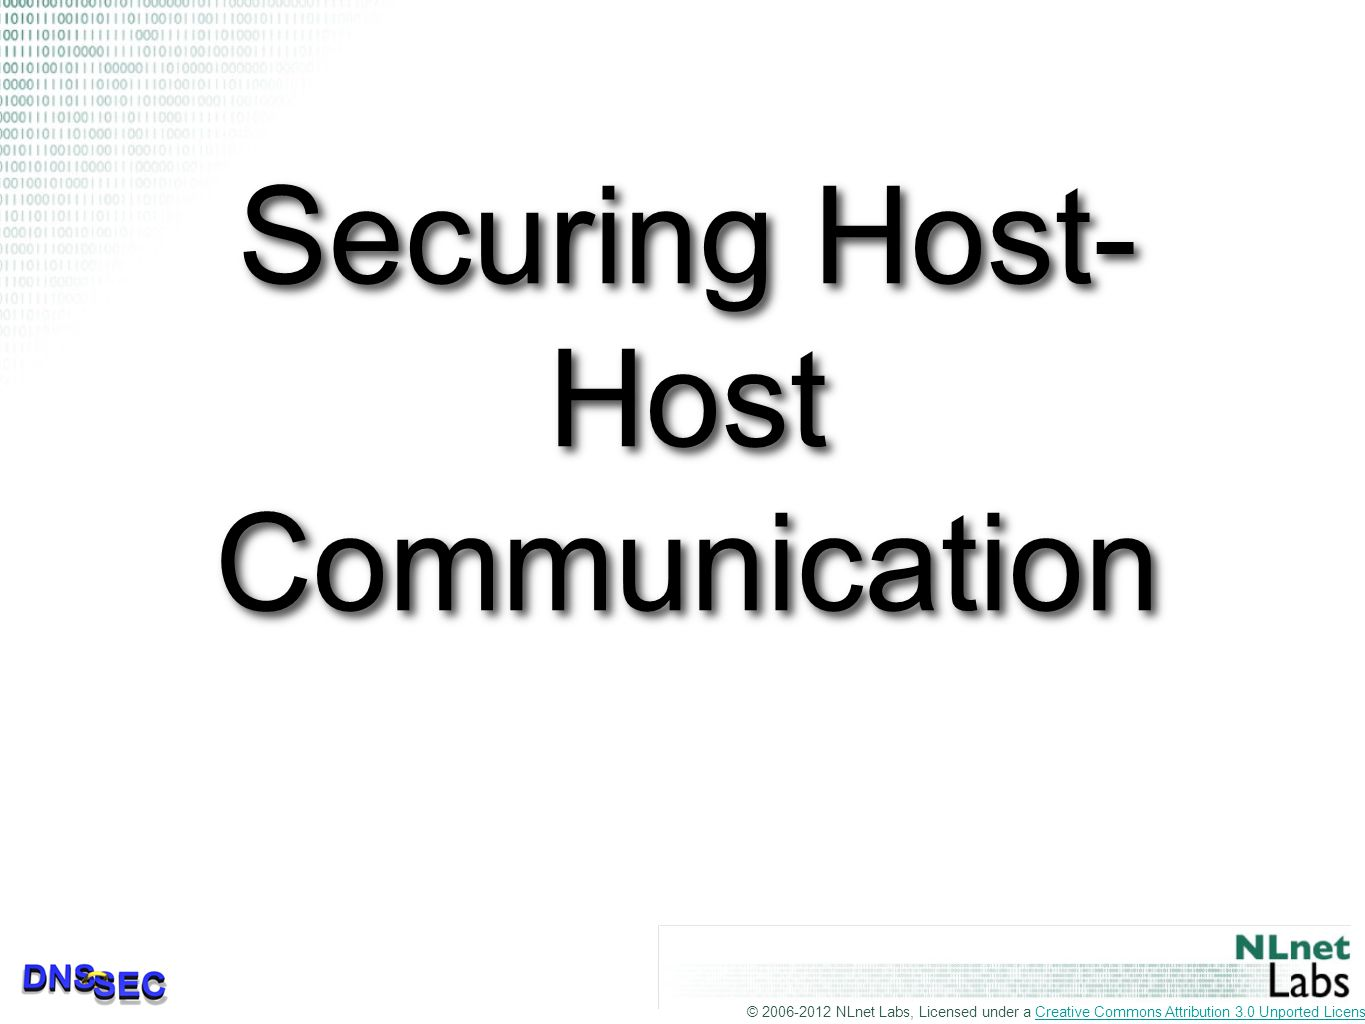 © 2006-2012 NLnet Labs, Licensed under a Creative Commons Attribution 3.0 Unported License.Creative Commons Attribution 3.0 Unported License Securing Host- Host Communication